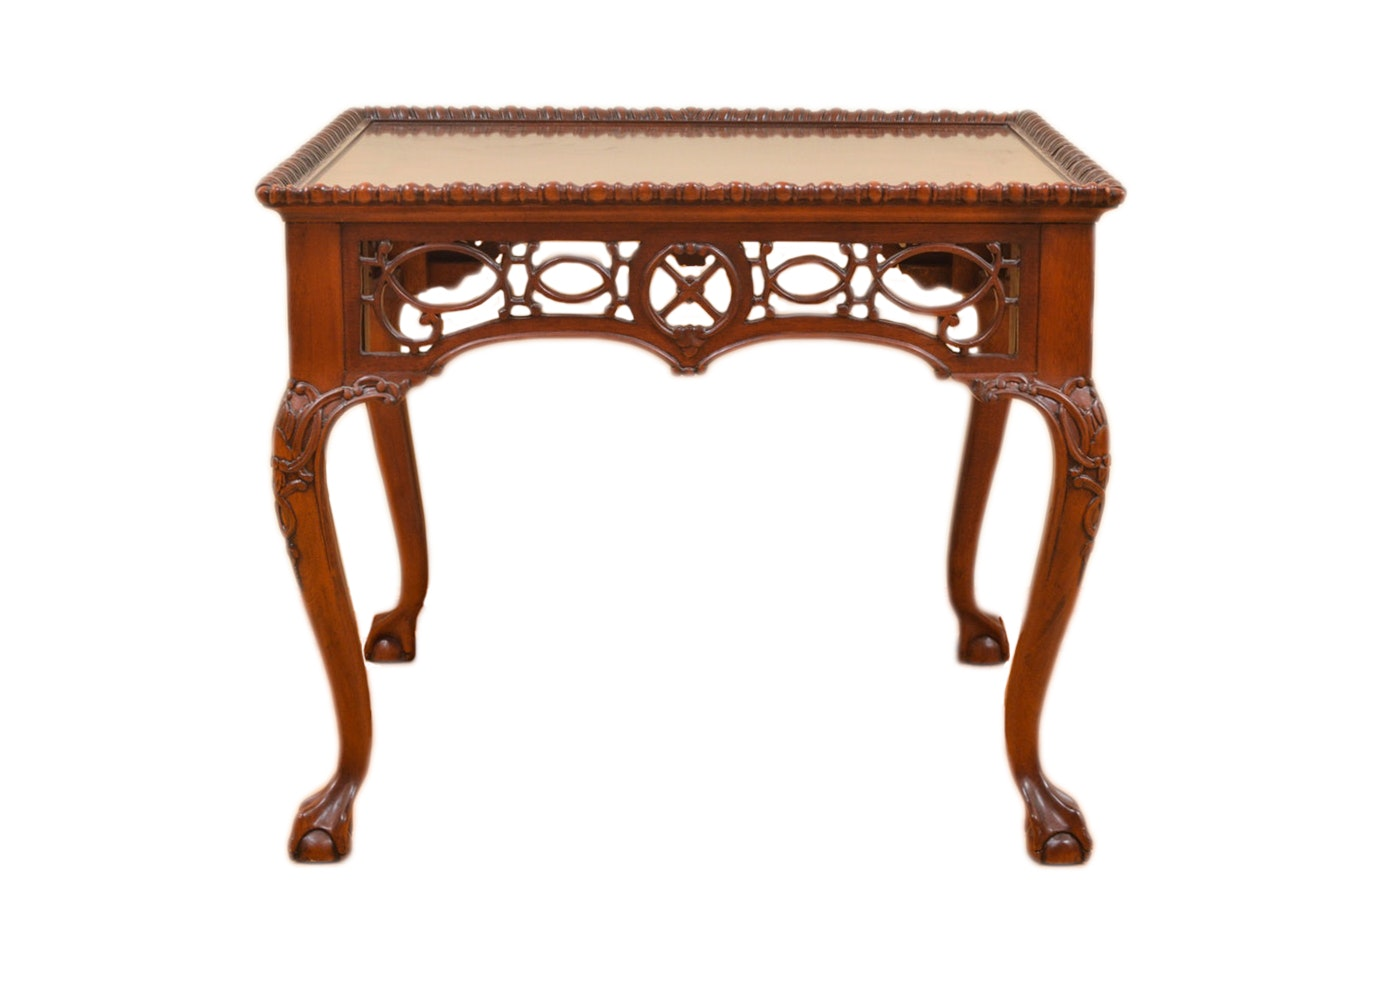 Vintage Chippendale Style Carved and Pierced Side Table by Wellington Hall